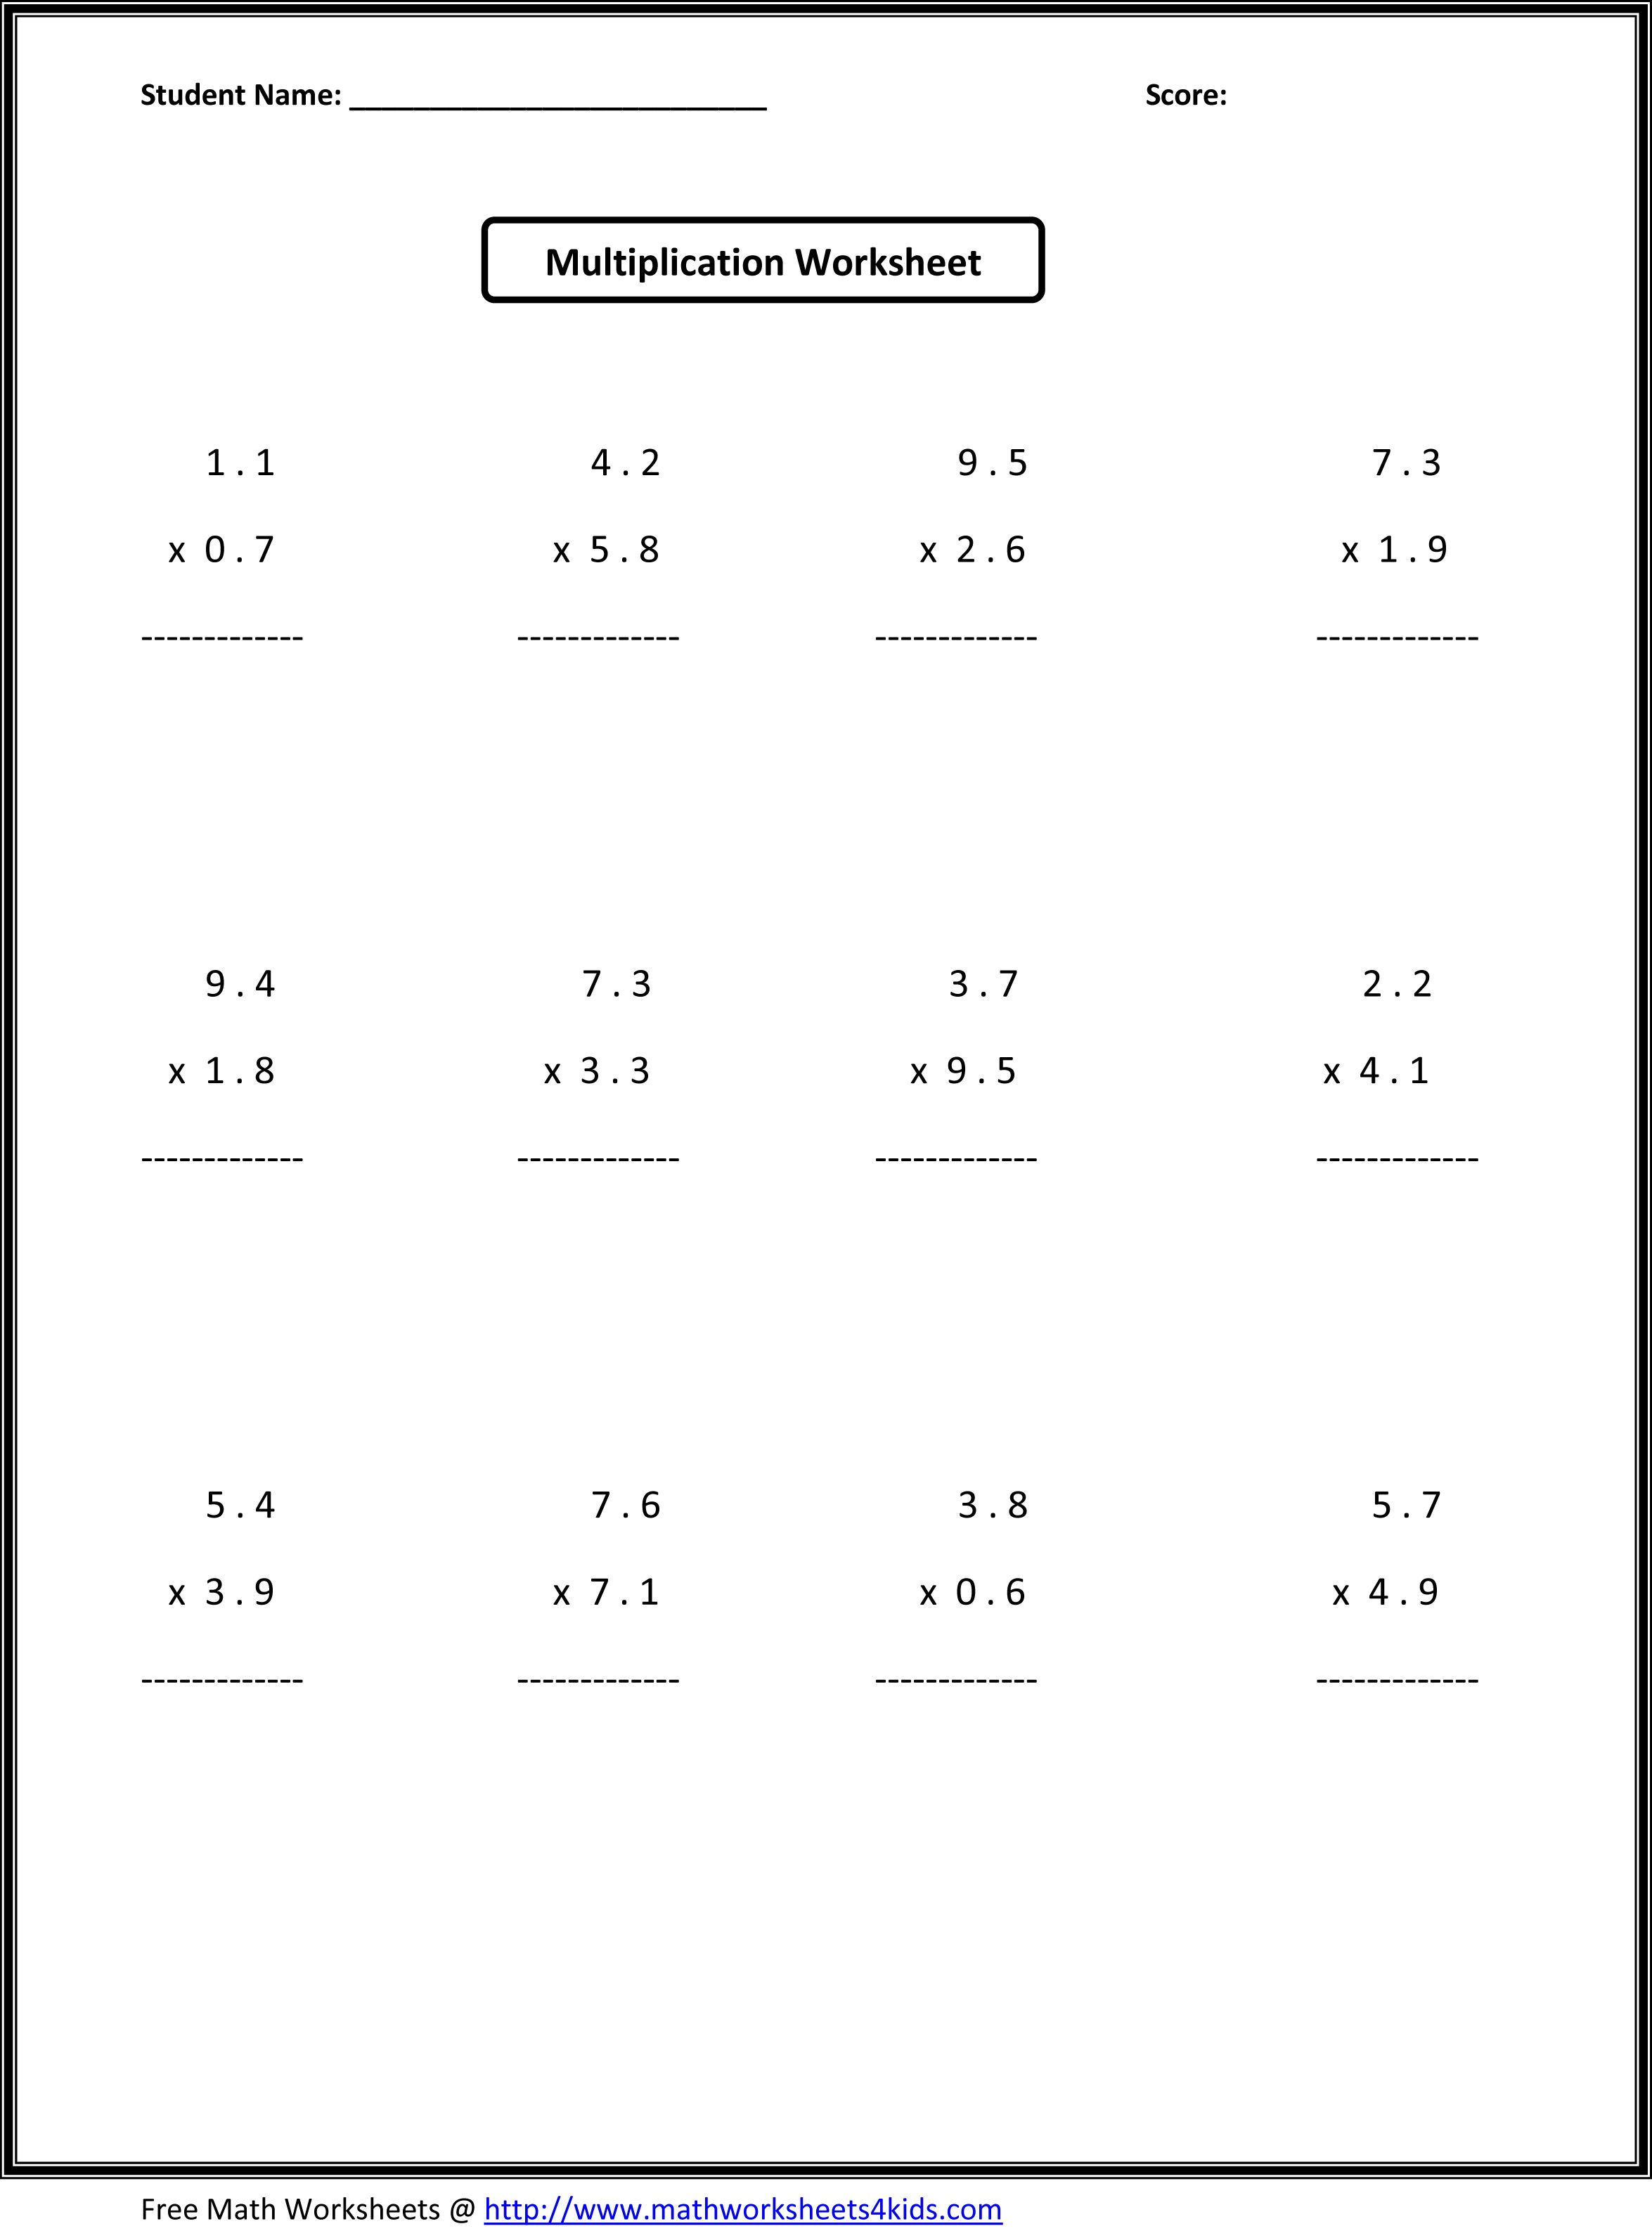 7th grade math worksheets – 6th Grade Fraction Worksheet